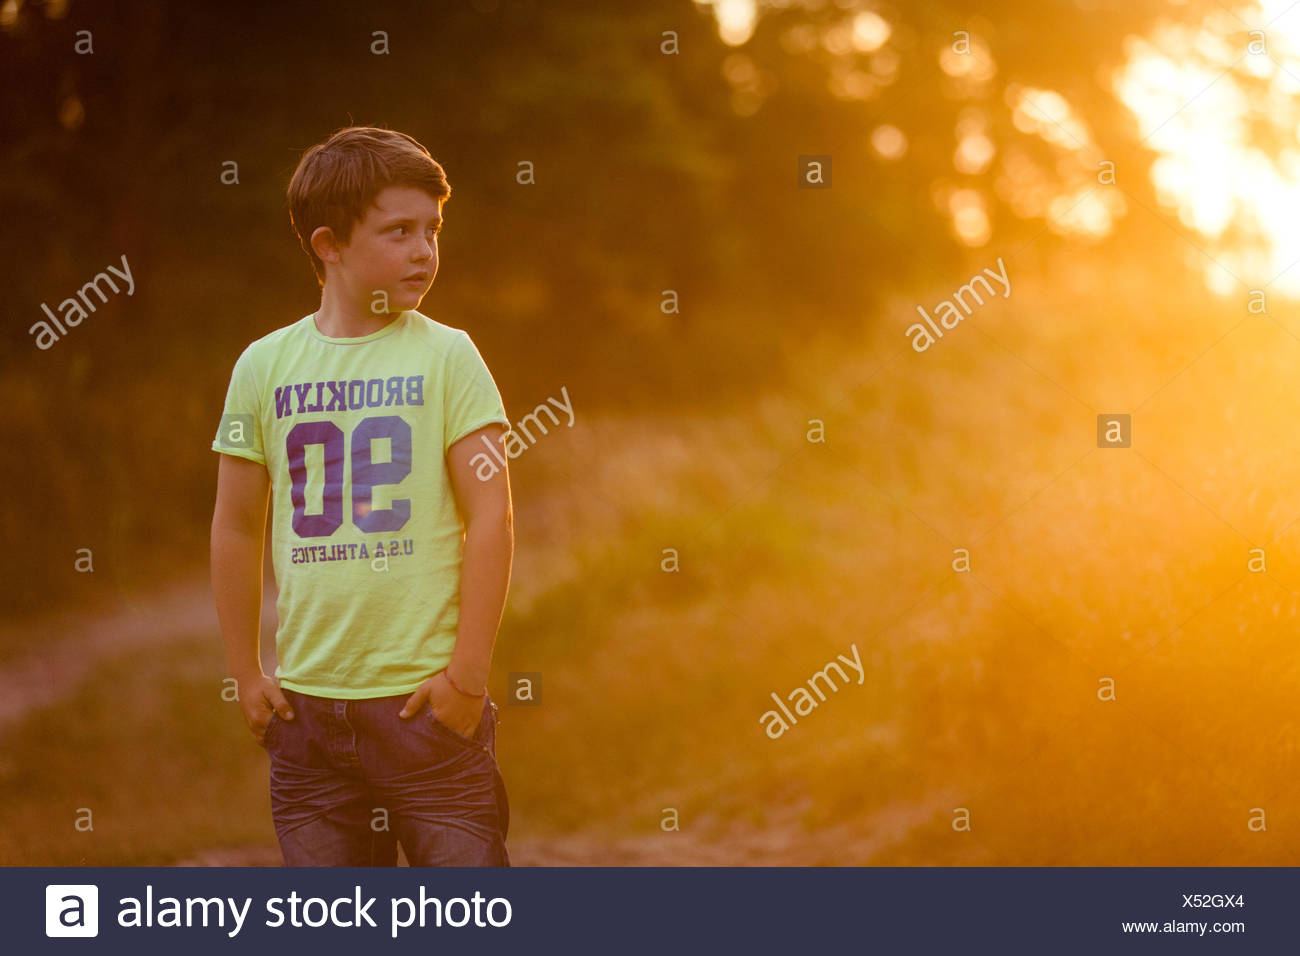 A young boy out in the country - Stock Image